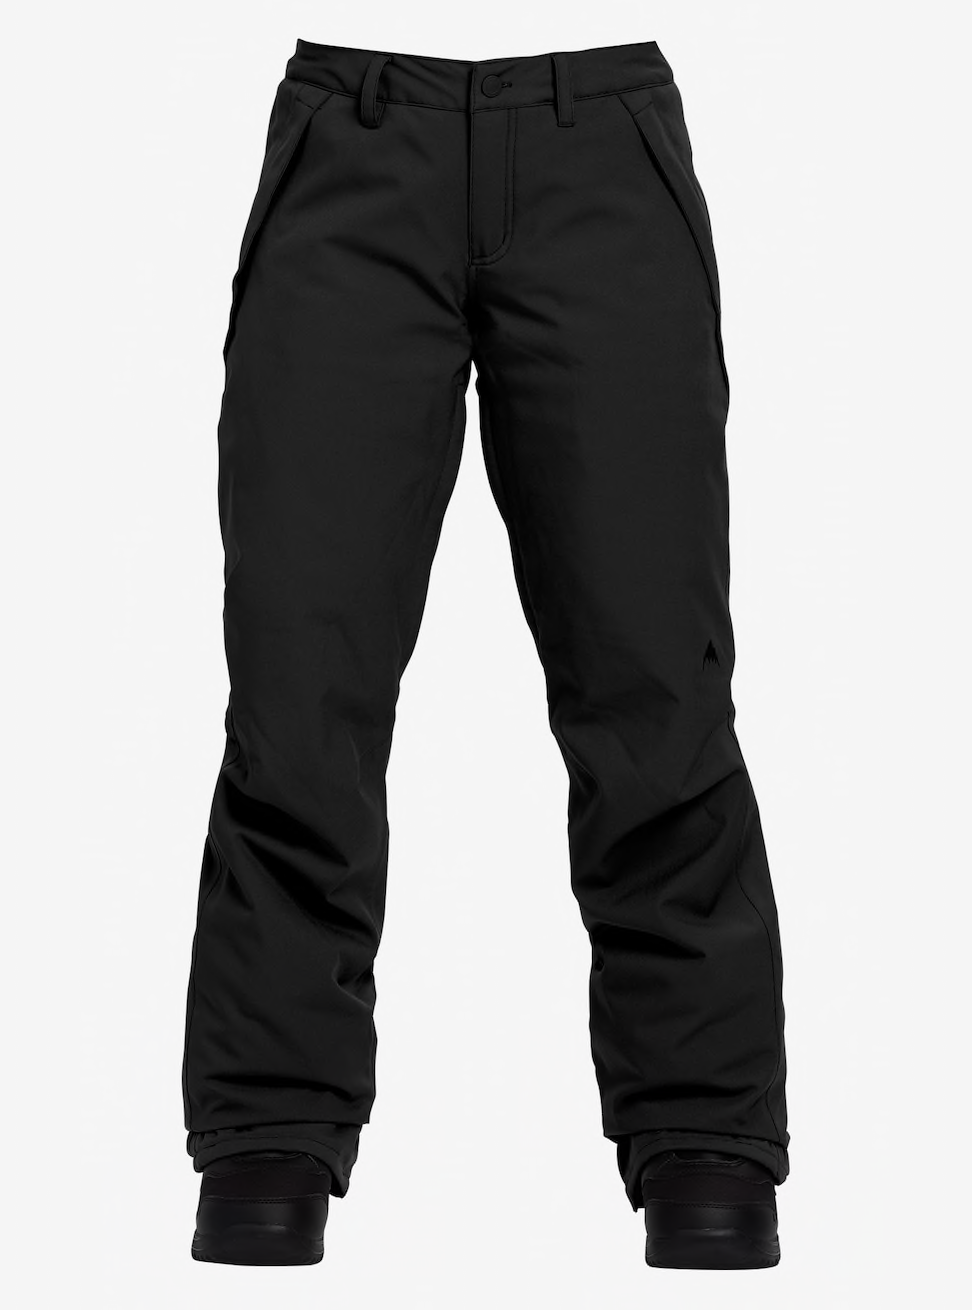 2019 Burton Society Pant - Black